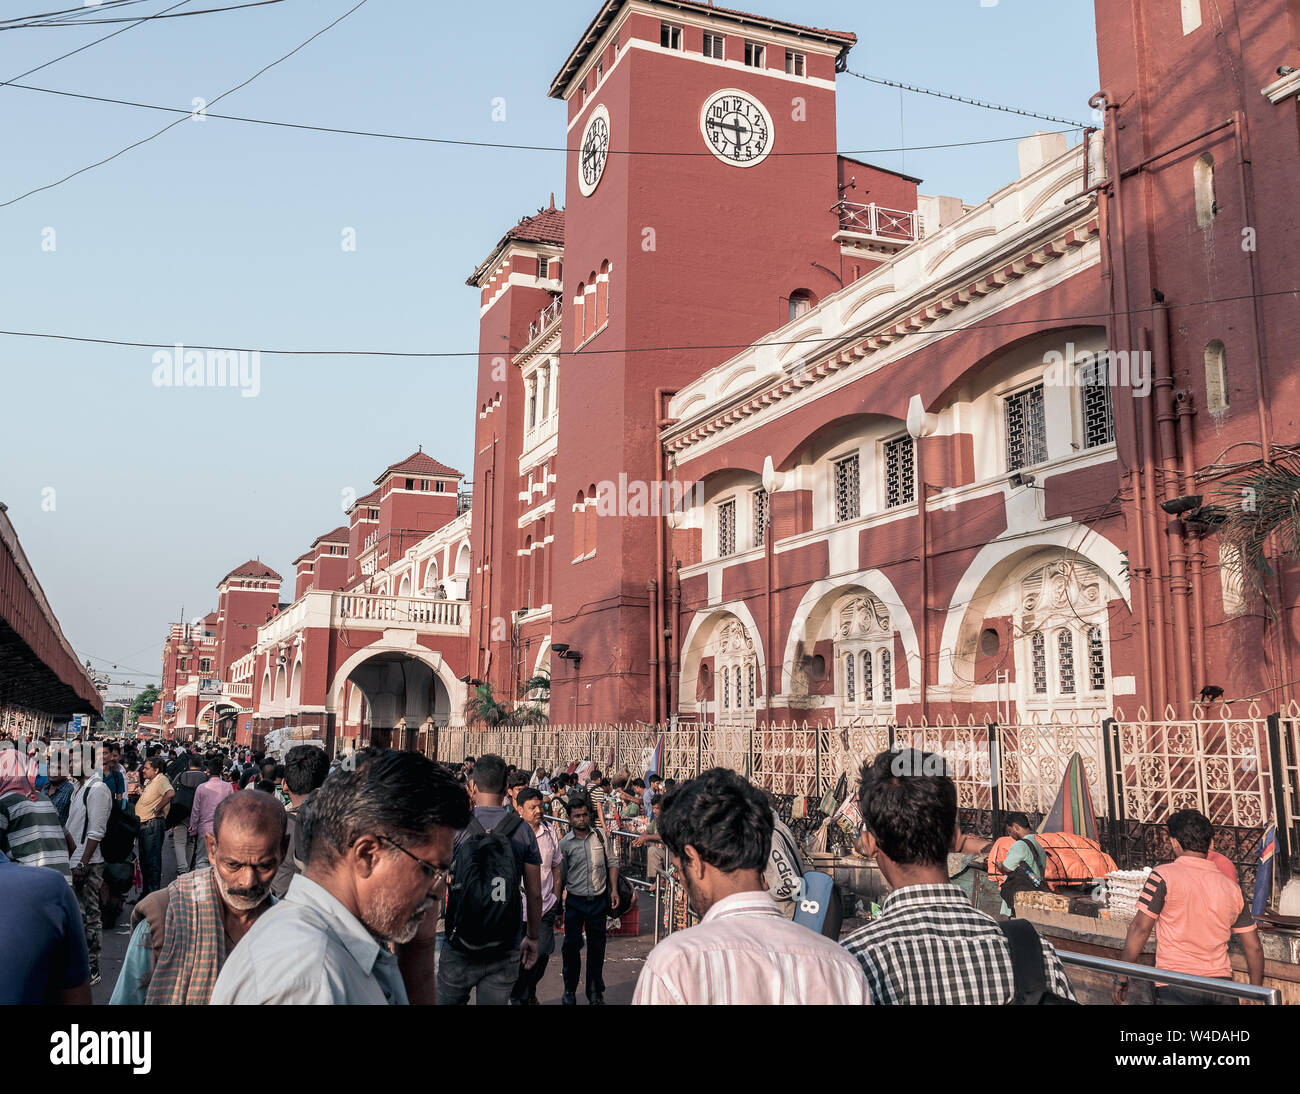 May 27,2018, Kolkata,India. The exterior of Howrah Junction, also known as Howrah Station, the largest railway complex in India . Stock Photo